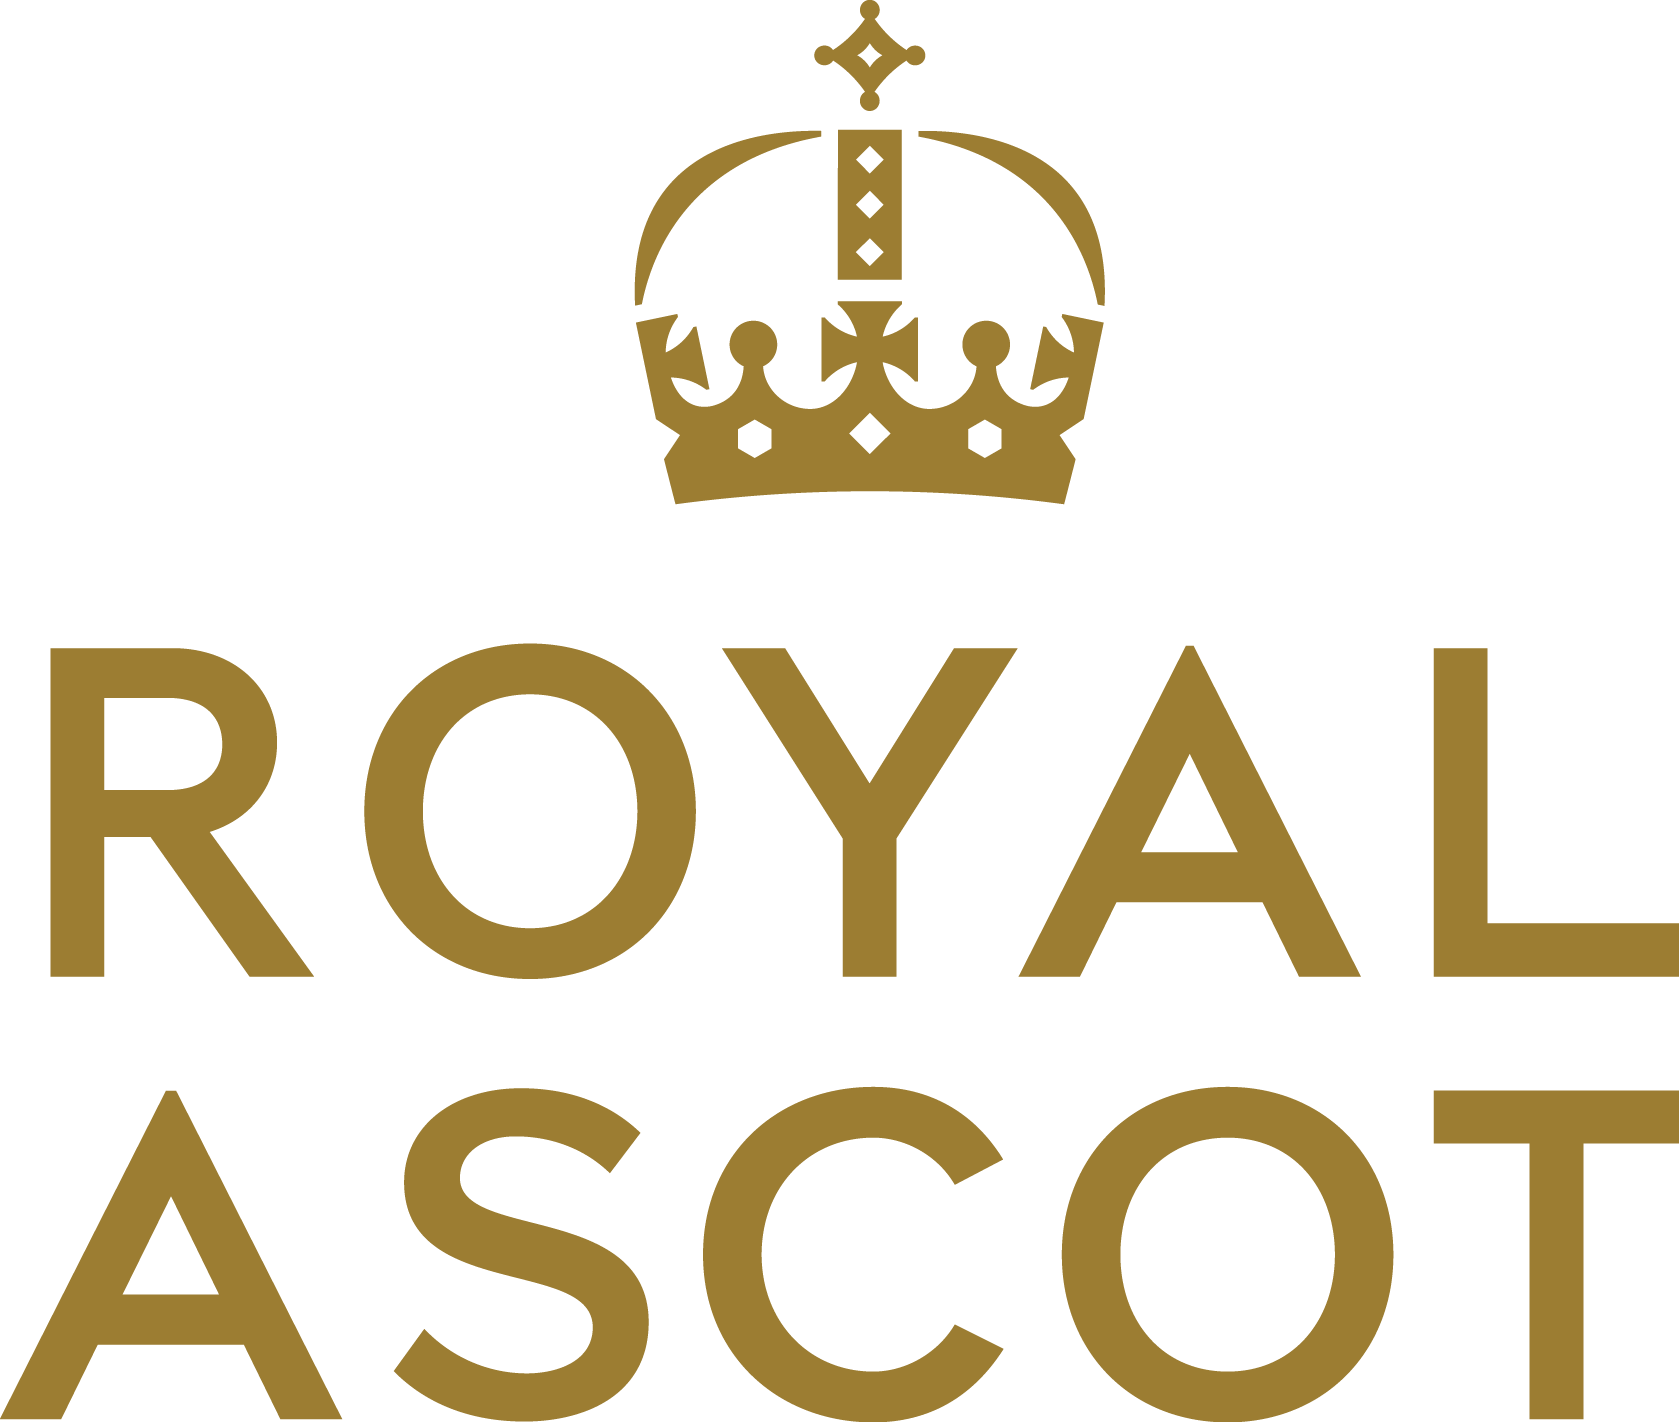 500 Complimentary Tickets to Royal Ascot made available to local residents